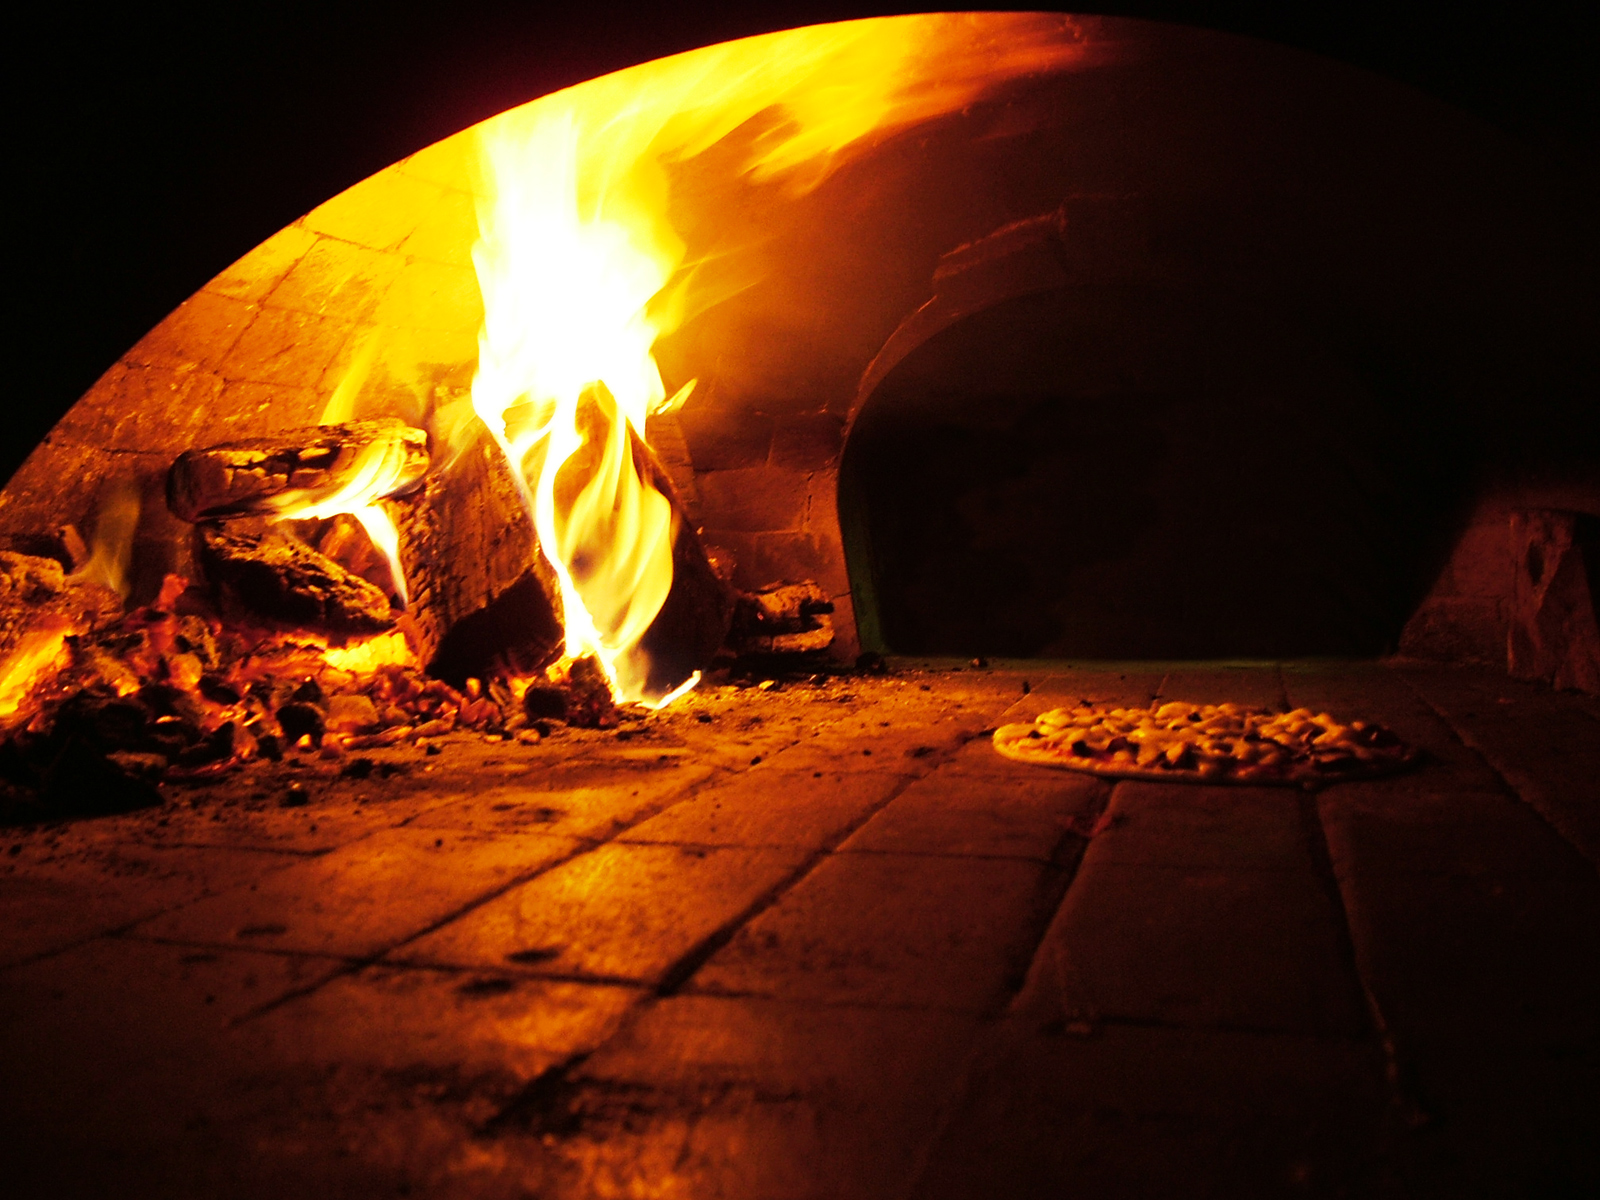 Pizza in a traditional oven. Source [Wikimedia](https://commons.wikimedia.org/wiki/File:Pizza-oven.jpg)